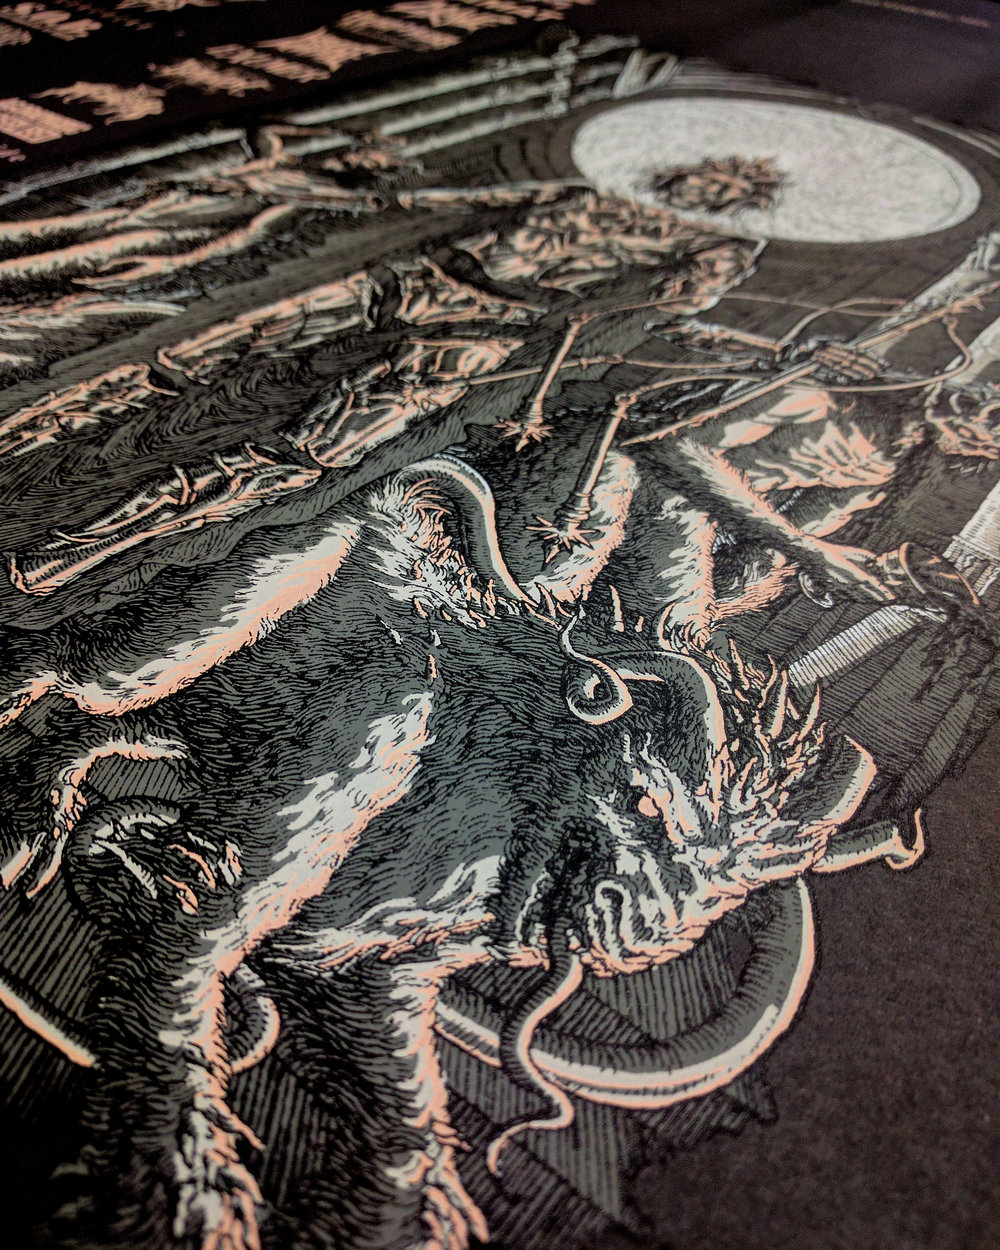 Maryland Deathfest XV screen printed poster